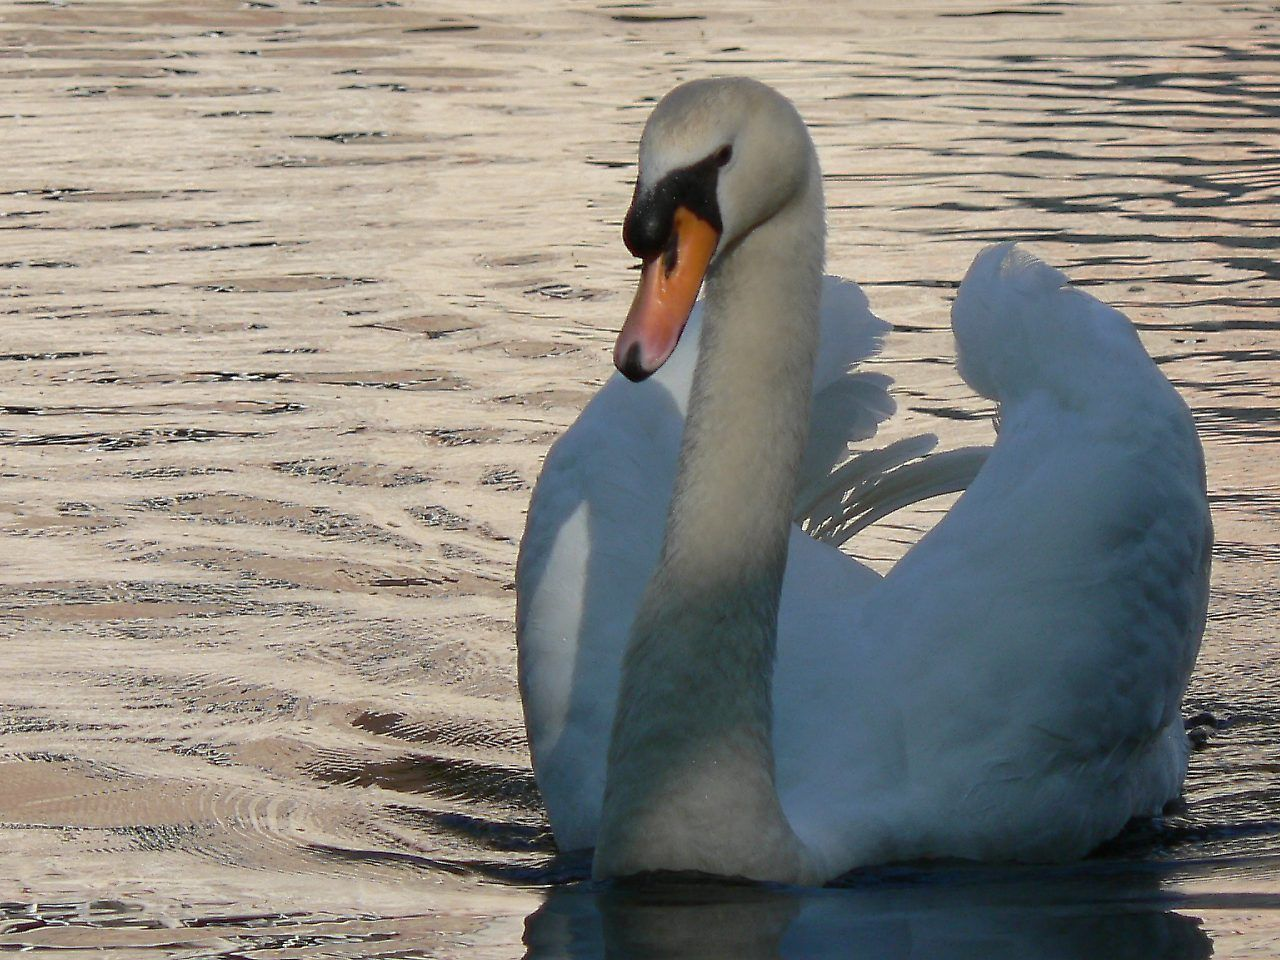 Swan Front Close Up Wallpaper 1280x960